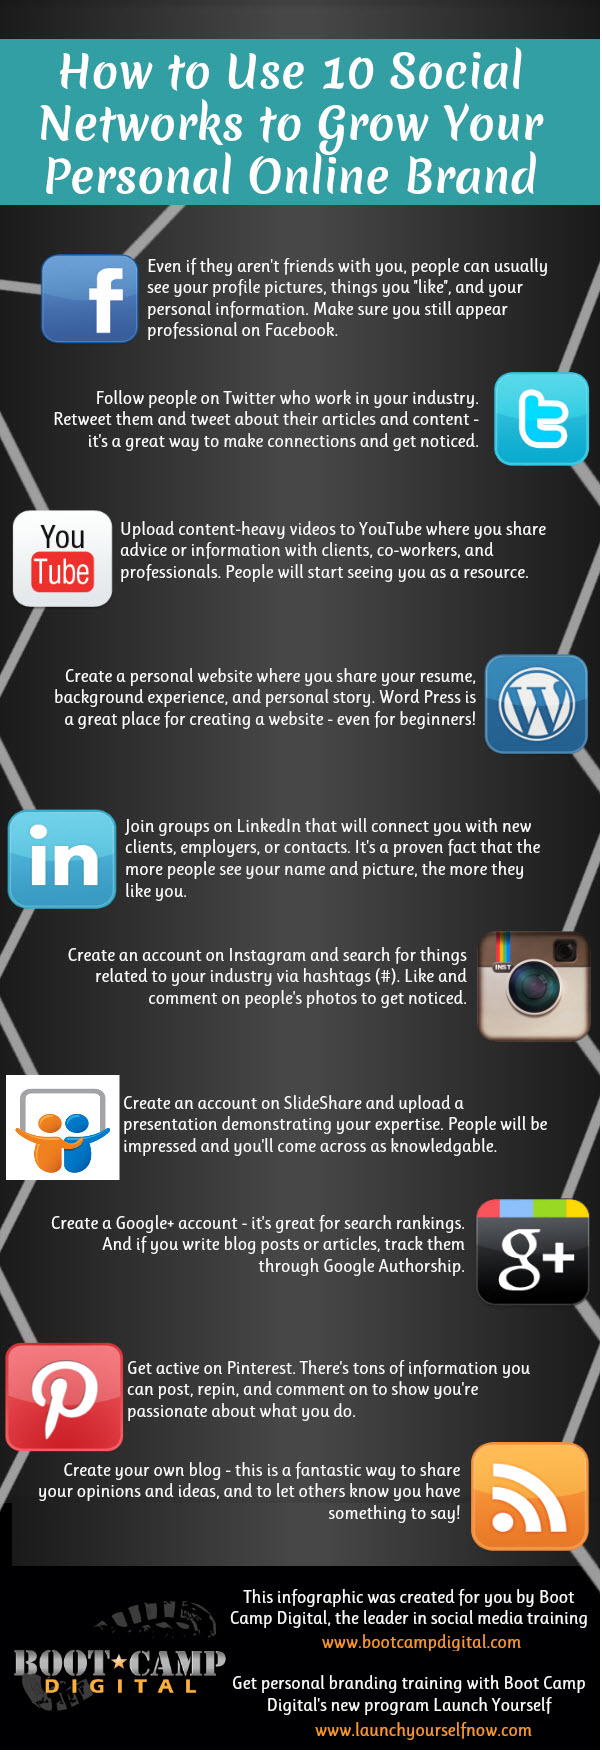 How to Market your Personal Online Brand on 10 Social Media Networks